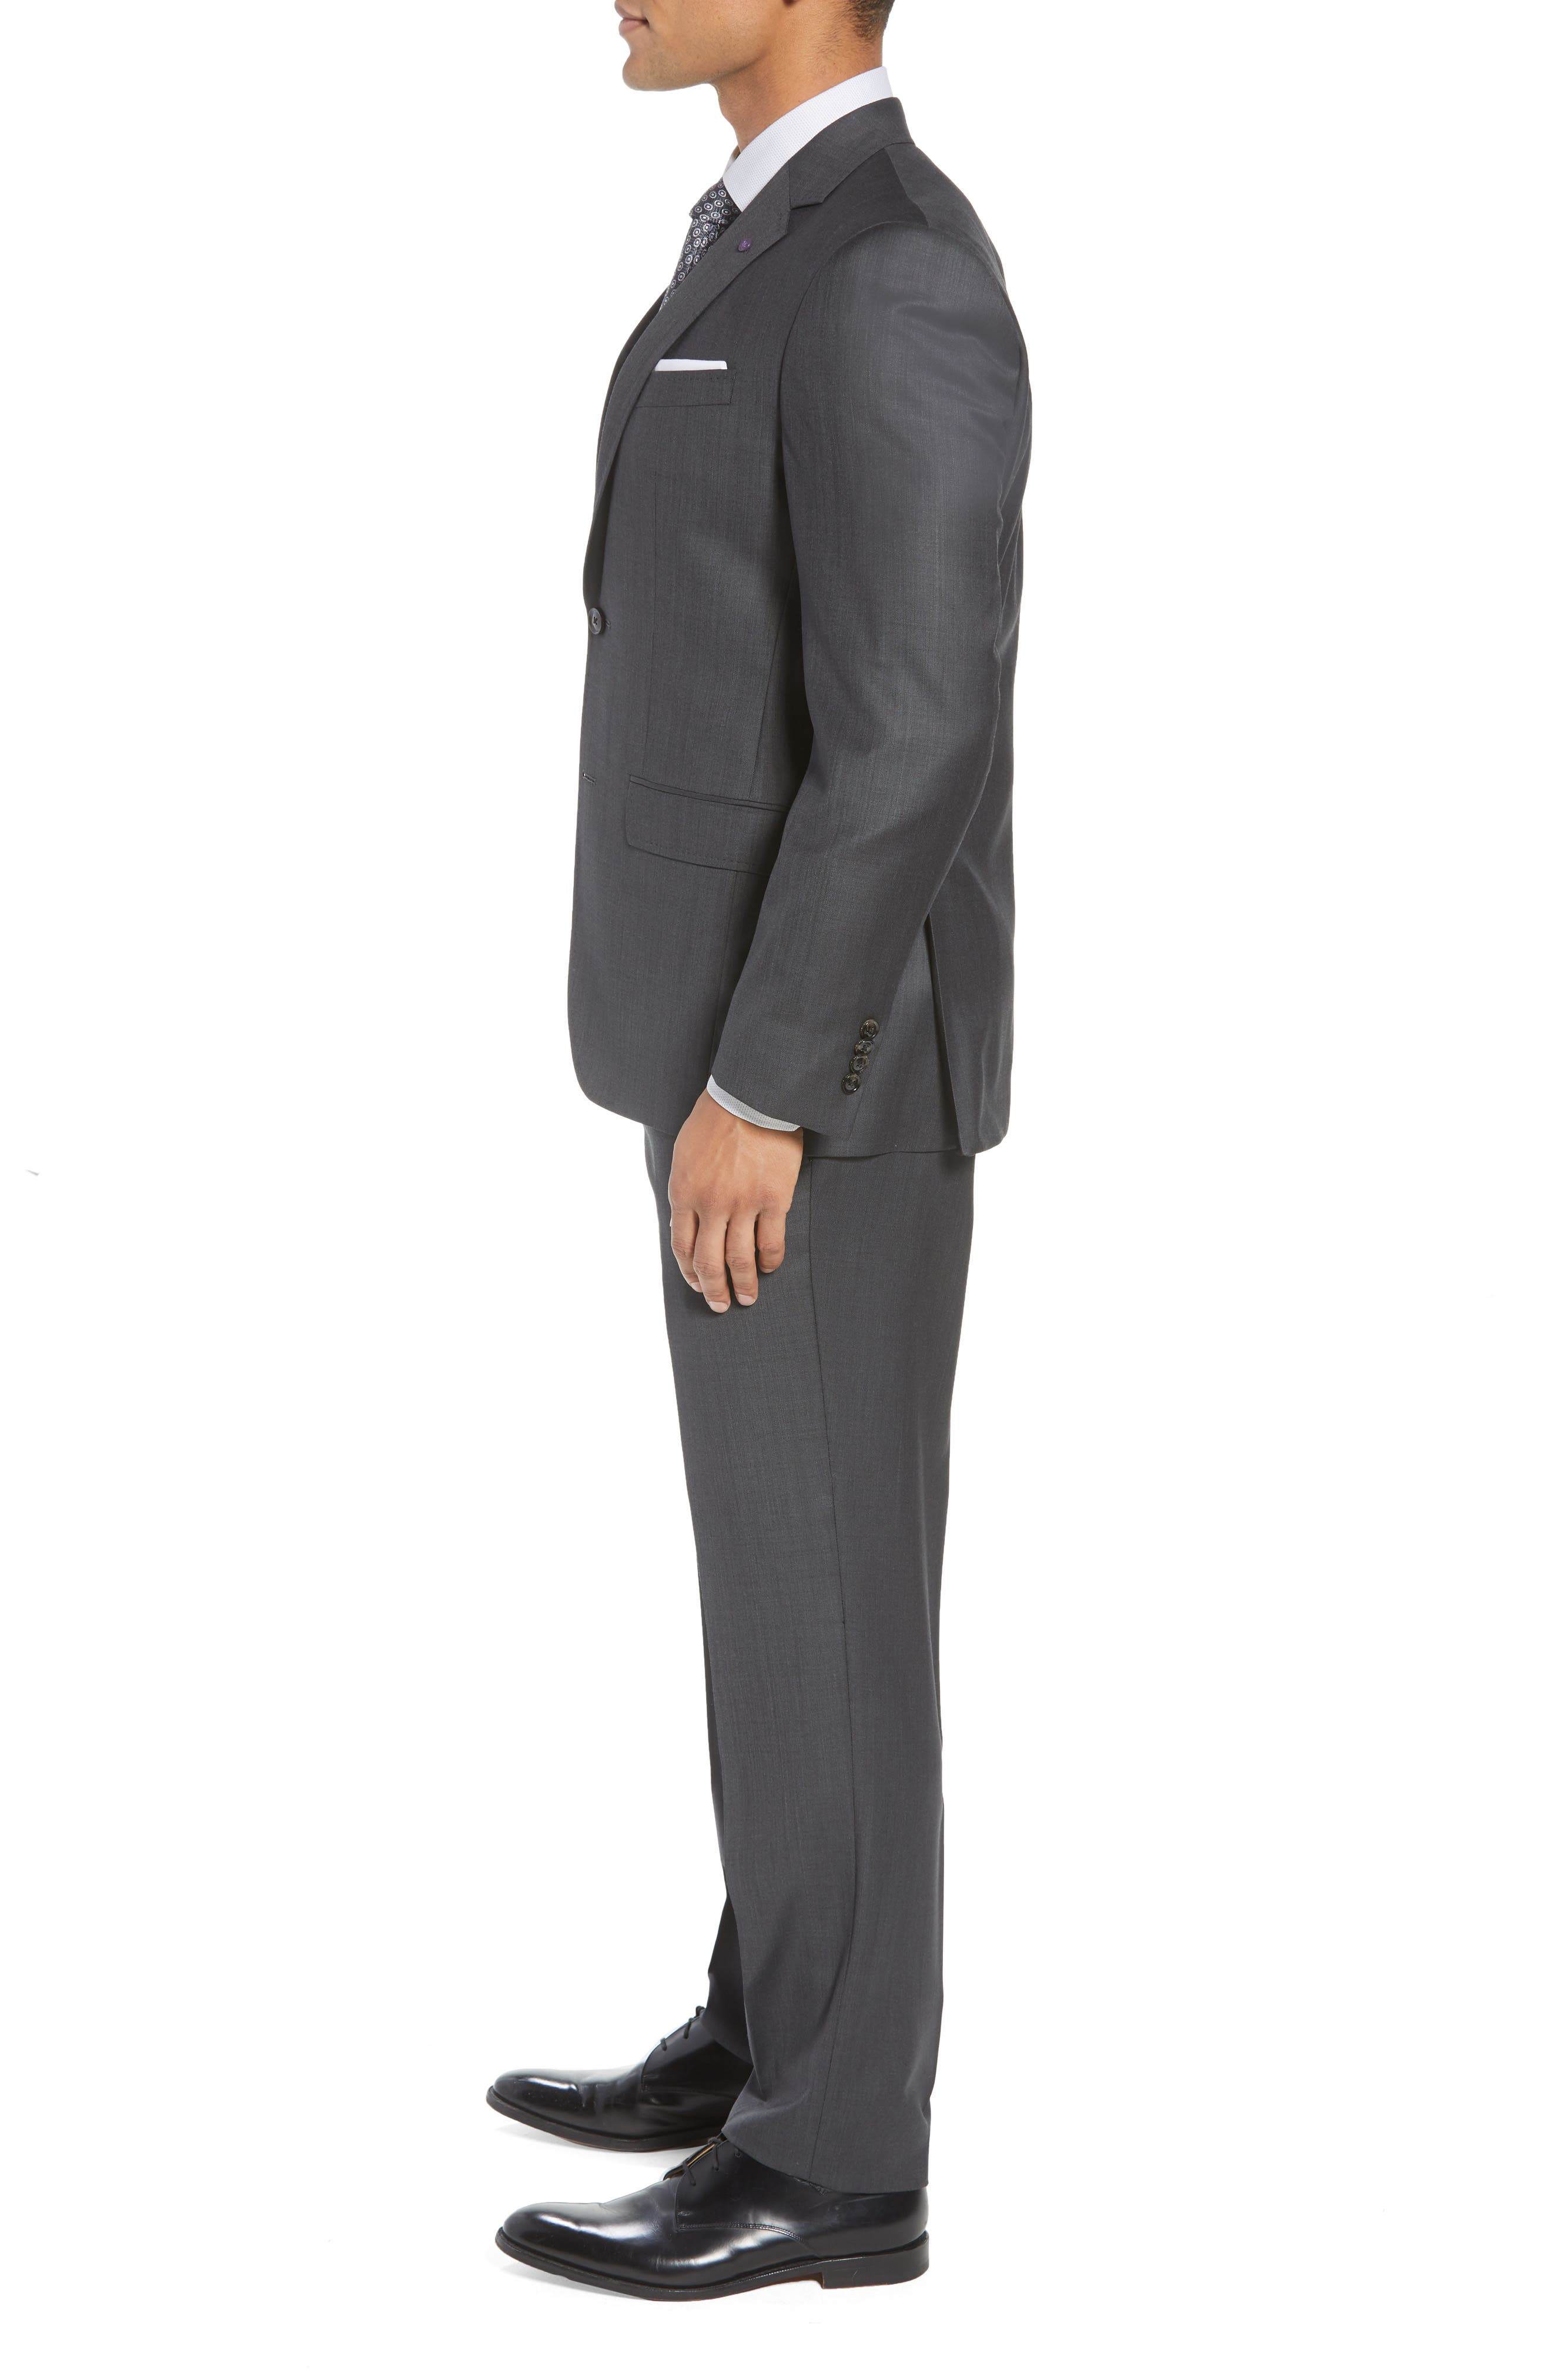 TED BAKER LONDON, ay' Trim Fit Solid Wool Suit, Alternate thumbnail 3, color, CHARCOAL